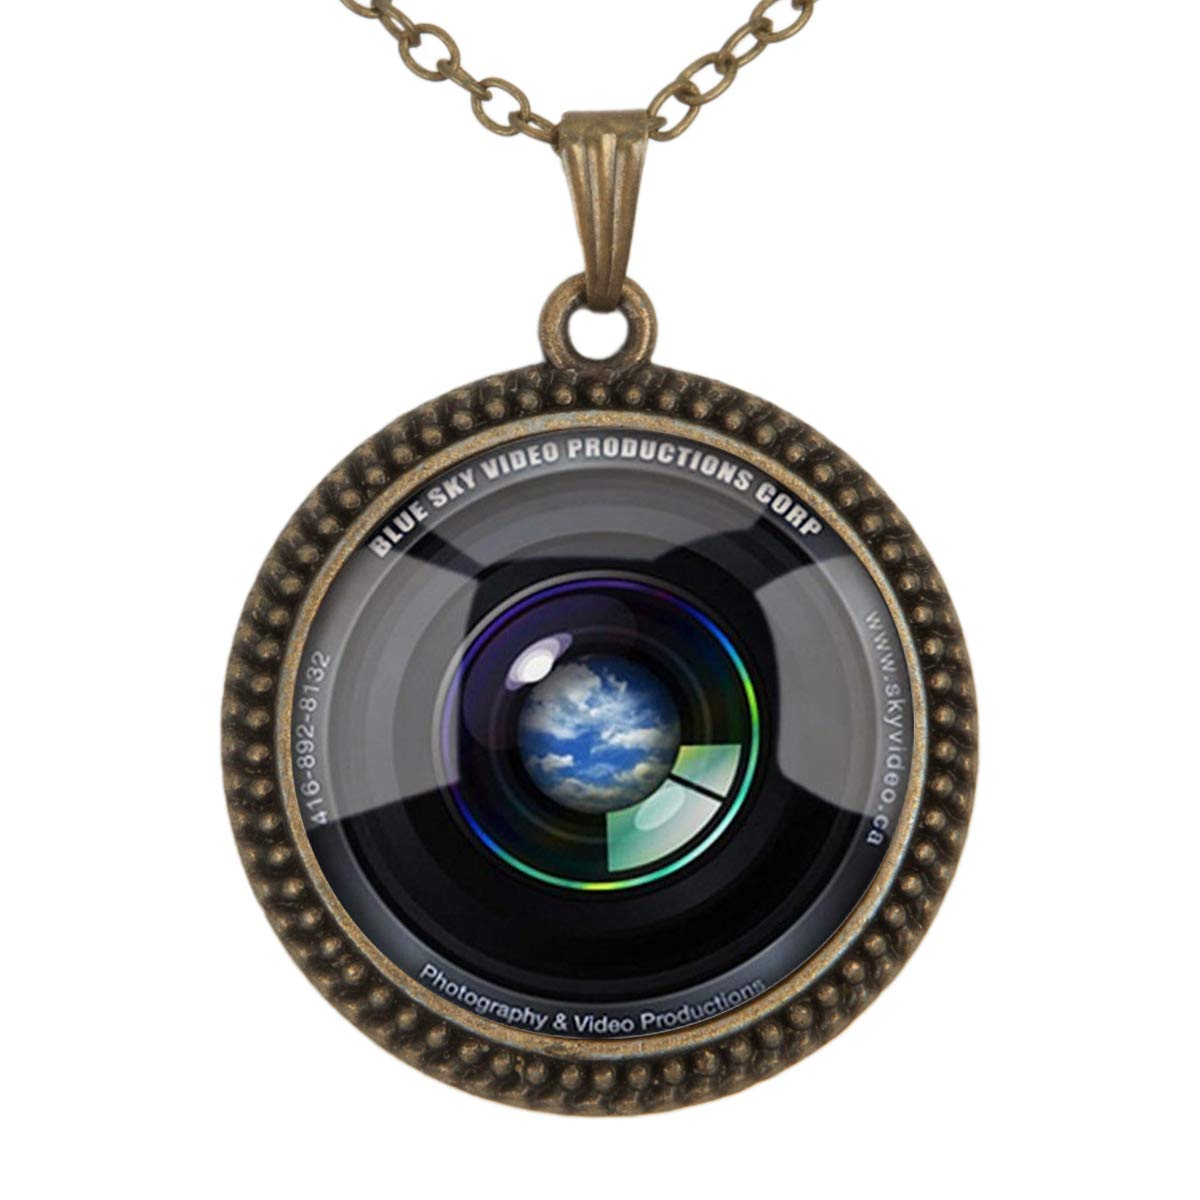 Lightrain Blue Sky Camera Lens Pendant Necklace Vintage Bronze Chain Statement Necklace Handmade Jewelry Gifts